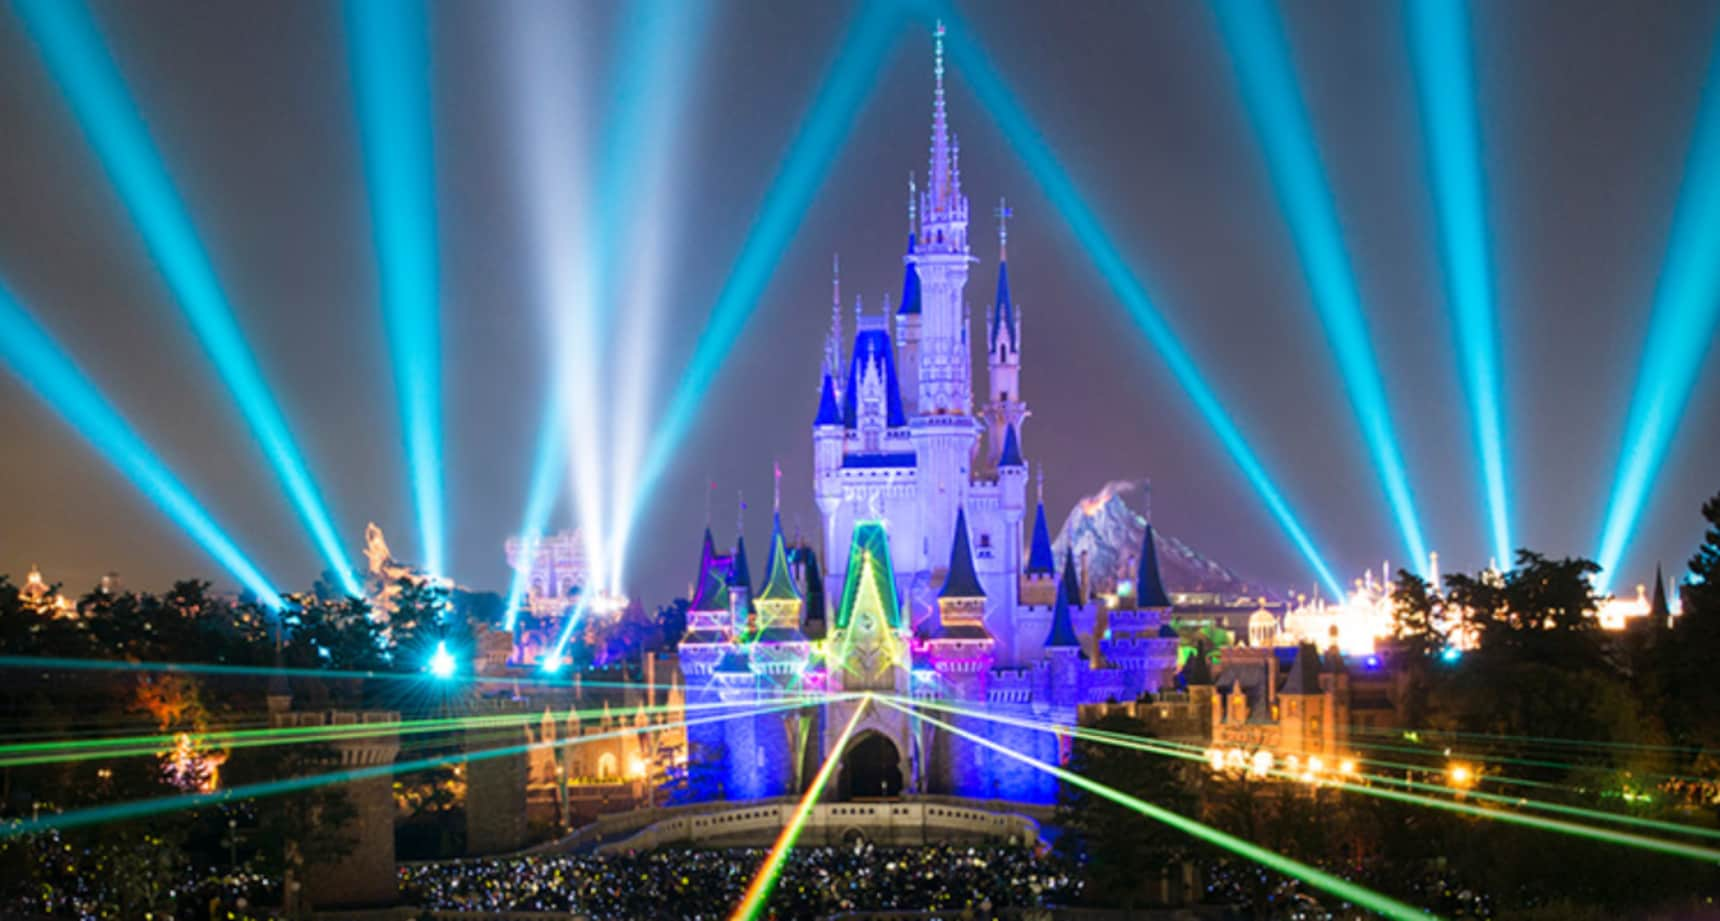 Ring in the New Year at Tokyo Disneyland!